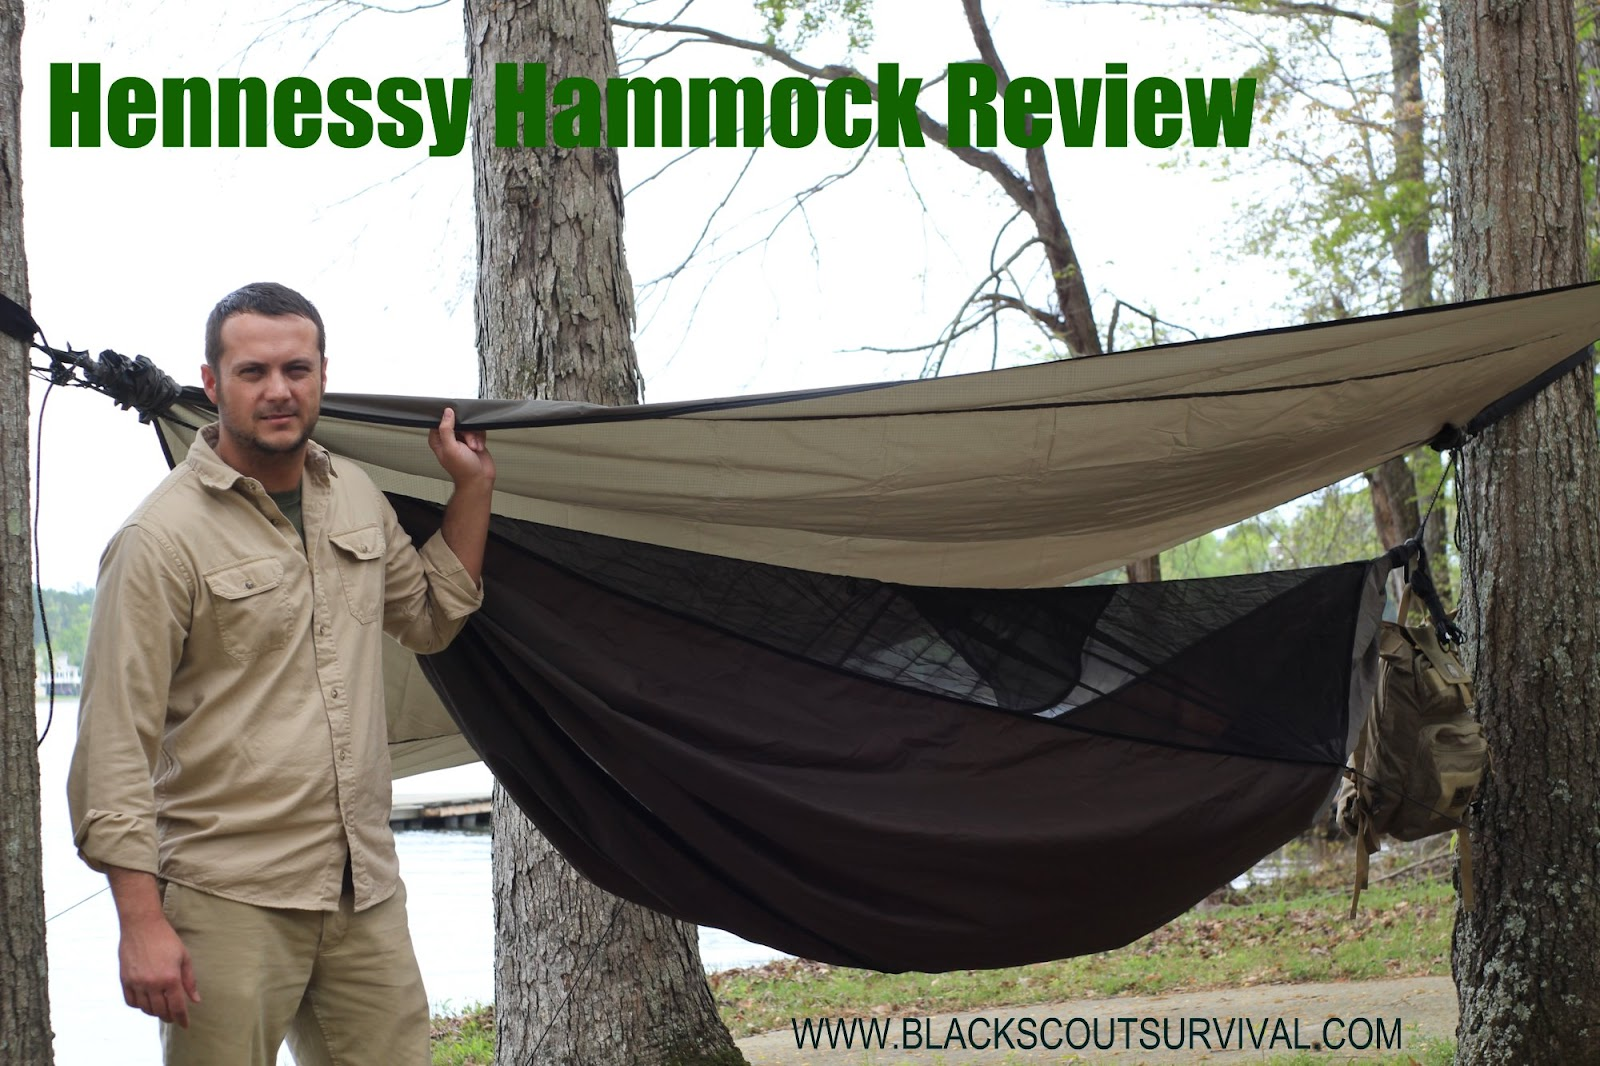 Black Scout Survival Hennessy Hammock Review